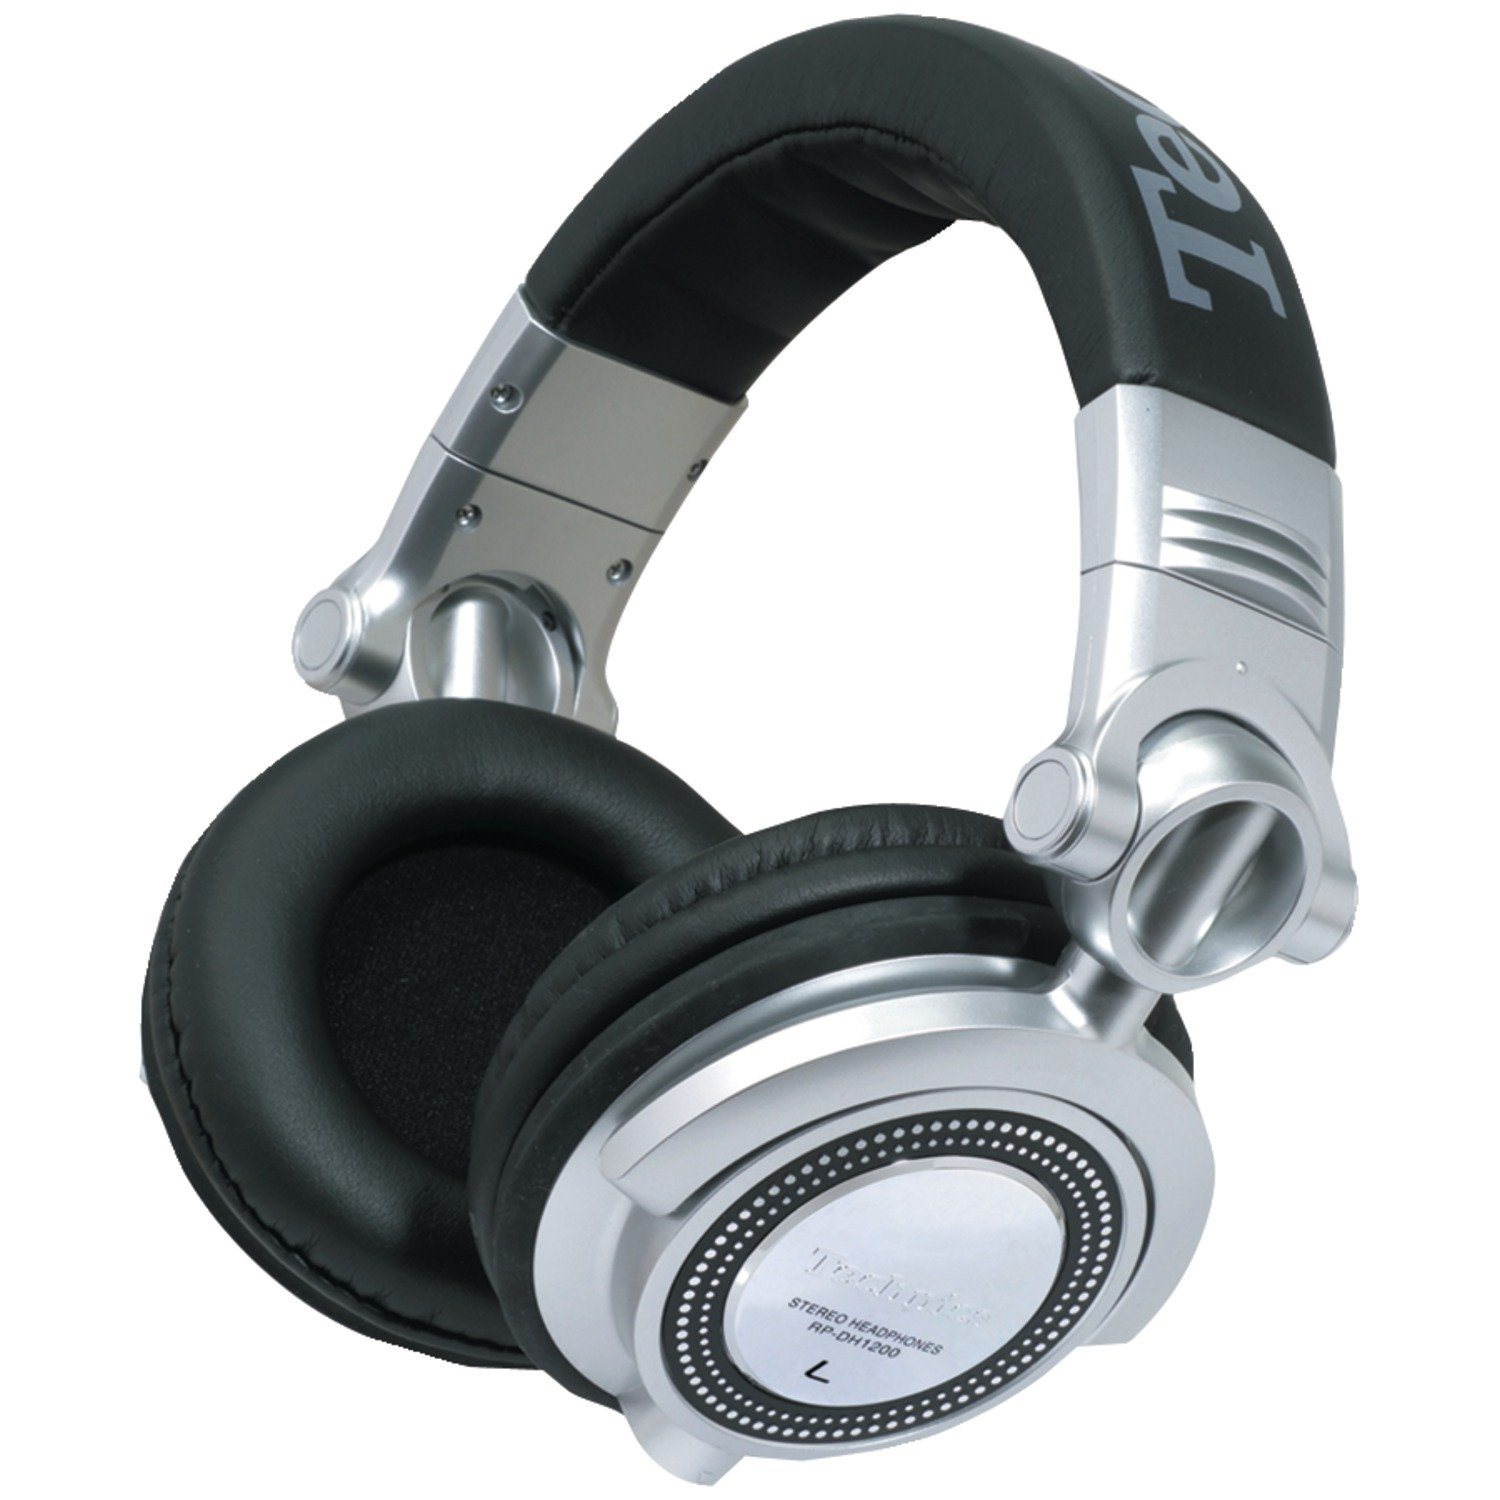 technics-dj-headphones-in-silverblack-rp-dh1250-s-sale-01